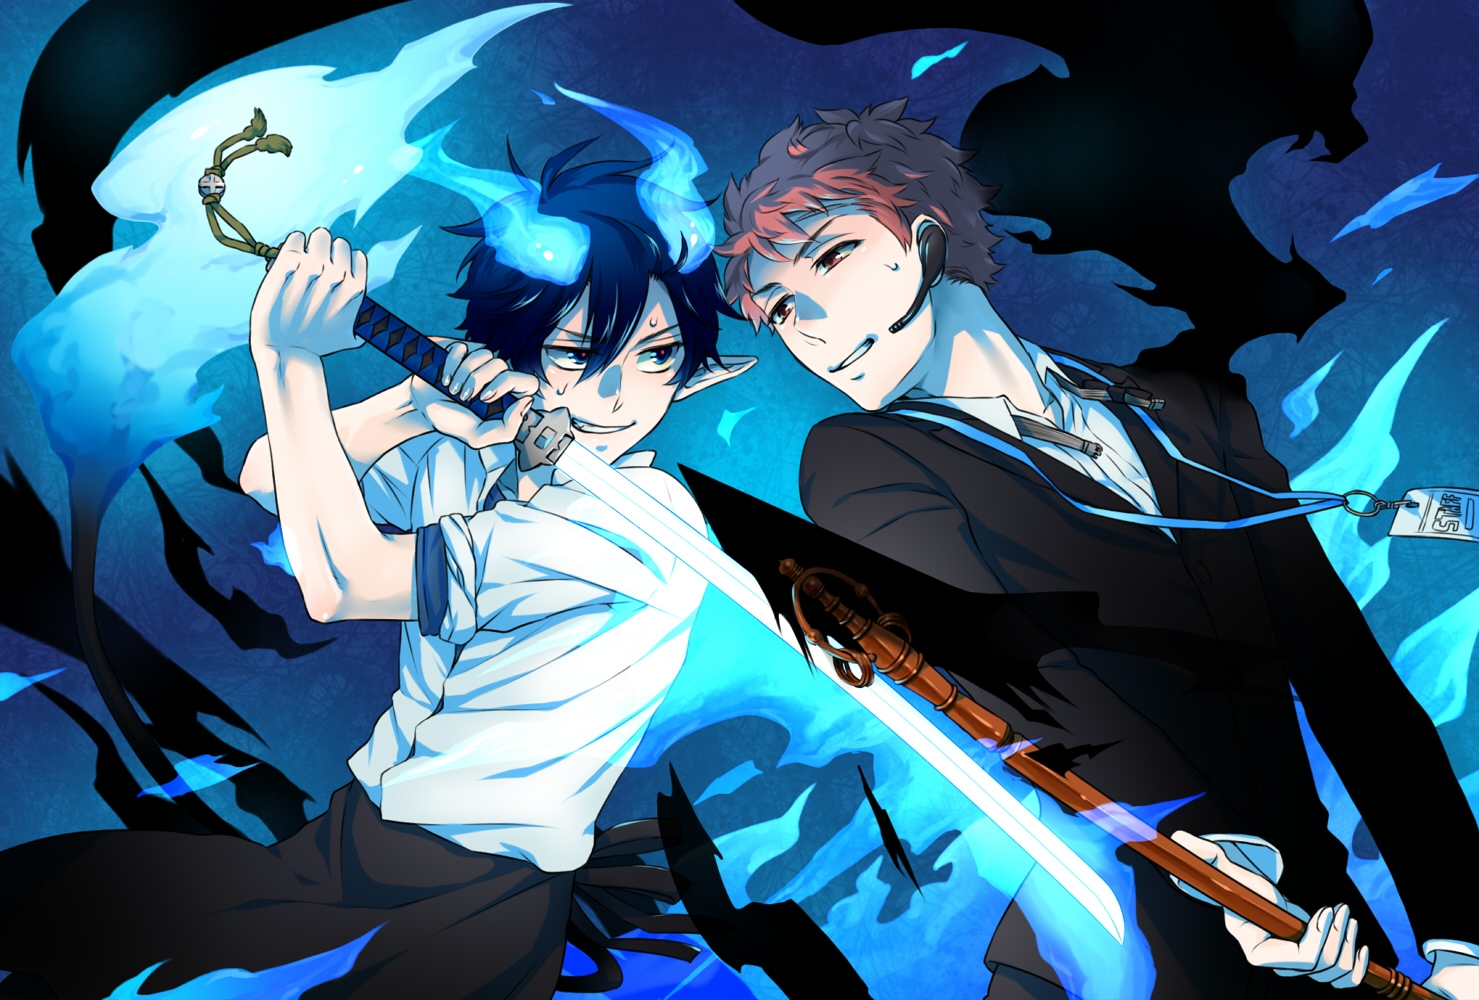 Rin Okumura Wallpaper And Background Image 1479x1000 Id 640543